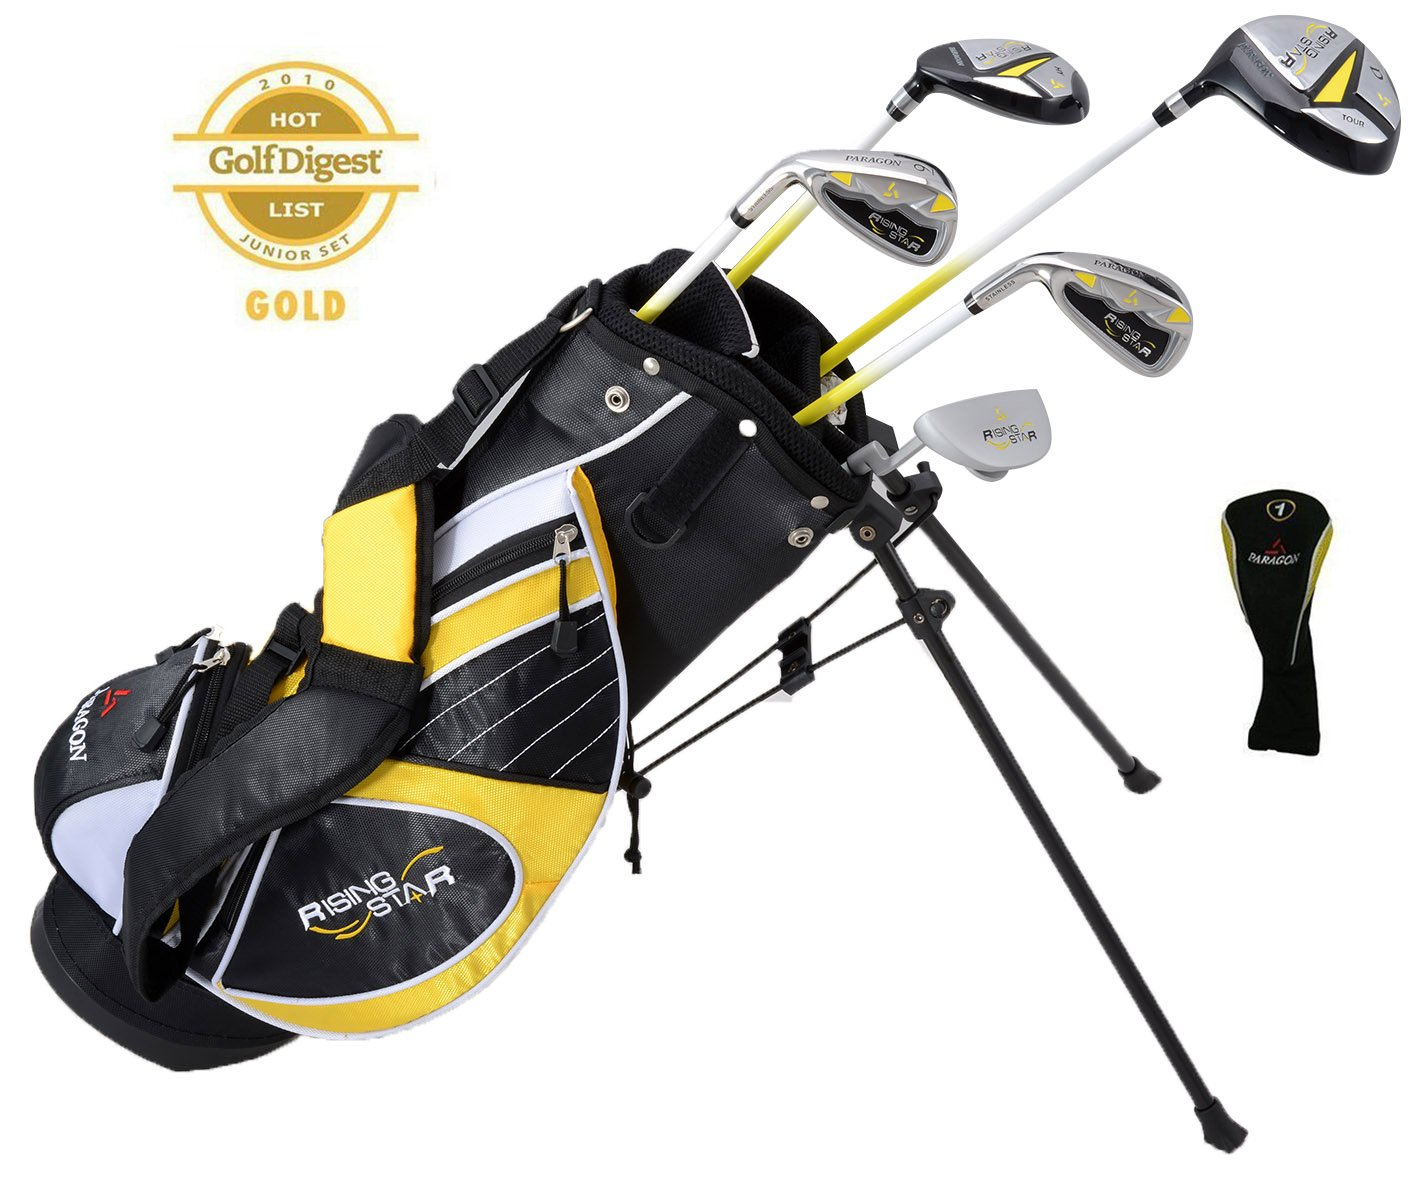 Paragon Rising Star Kids Golf Clubs Set / Ages 5-7 Yellow With Hat / Left-Hand by Paragon (Image #1)